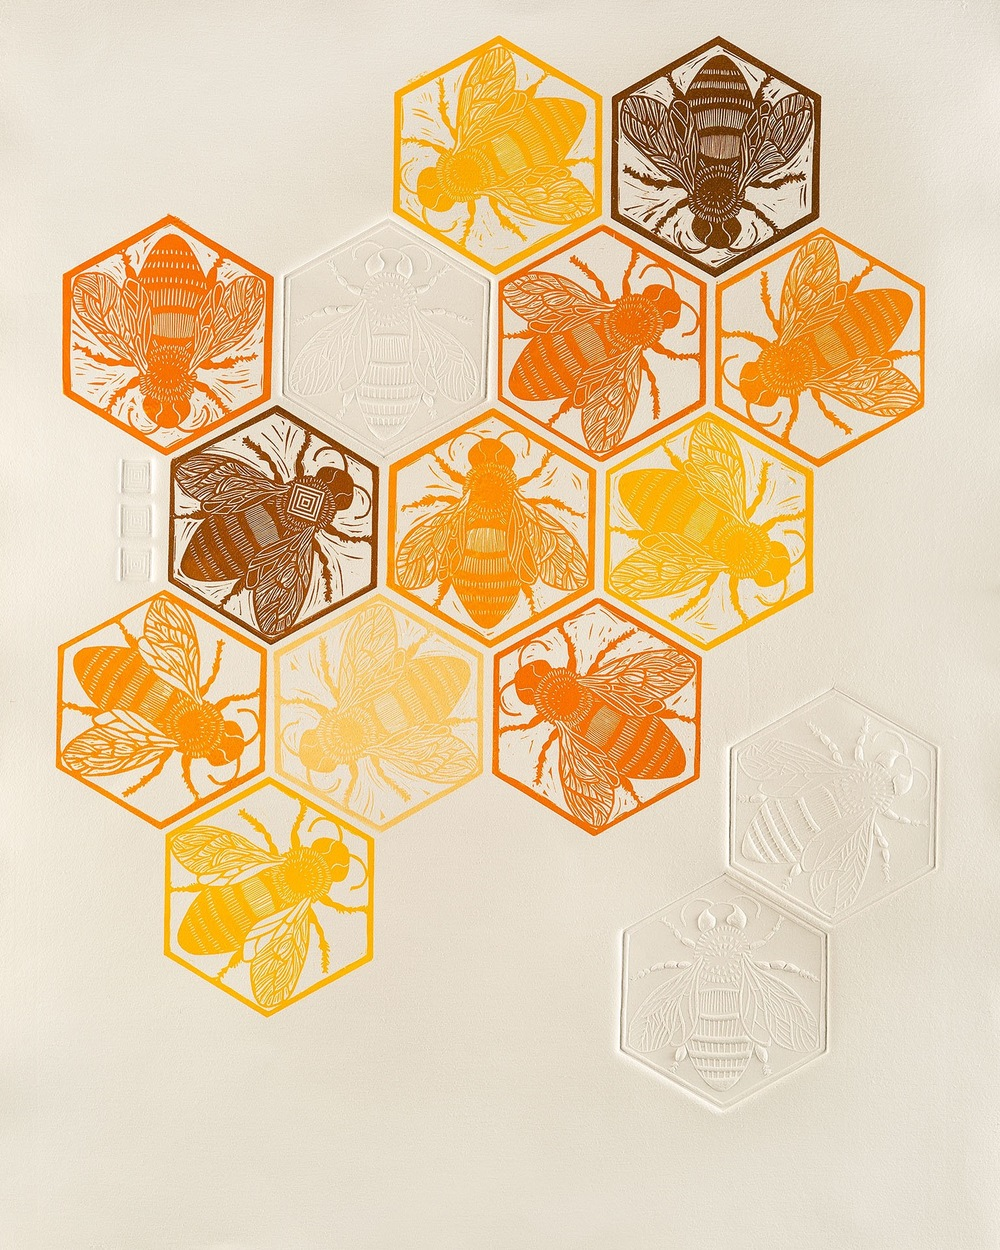 Diminishing Returns   Linocut with embossing, 2016  Edition of 3  Paper size: 90 cm x 70 cm  $600   Diminishing Returns  explores the recent decline of bee populations worldwide. Colony Collapse Disorder and the reduction in bee numbers potentially has a devastating effect upon the pollination of plants and food production.   Research is being undertaken by the CSIRO in Tasmania to find out more about this global problem. Tiny sensors have been placed onto 10,000 bees to trace movement and exposure to certain elements. Hopefully this will help us to understand more about this mystery and how it can be addressed.